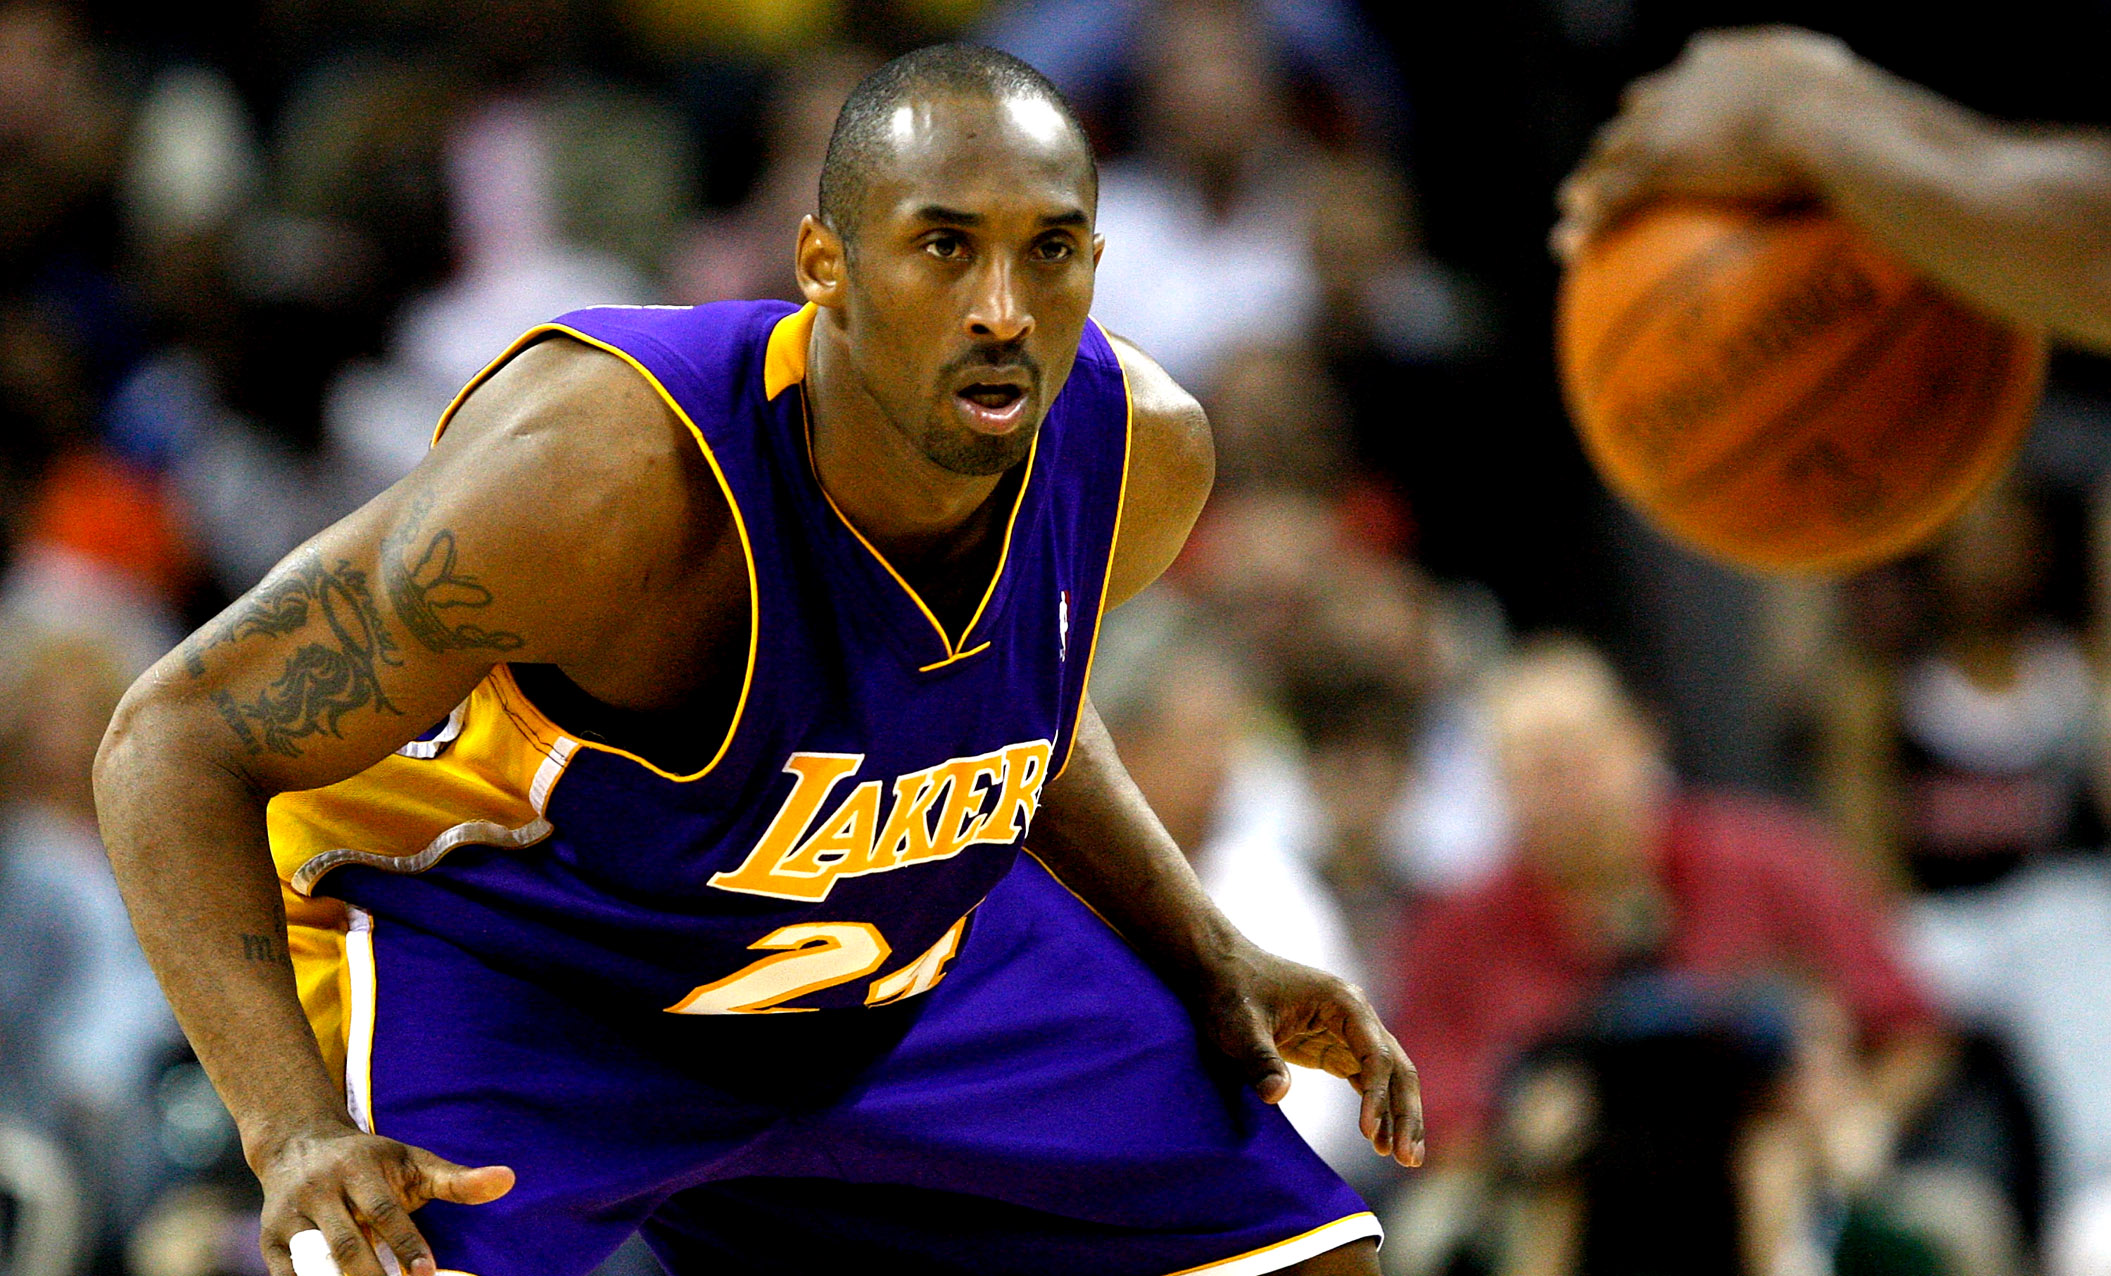 NBA Referee Zach Zarba Shares Story Confirming What A Savage Kobe Bryant Was On The Court